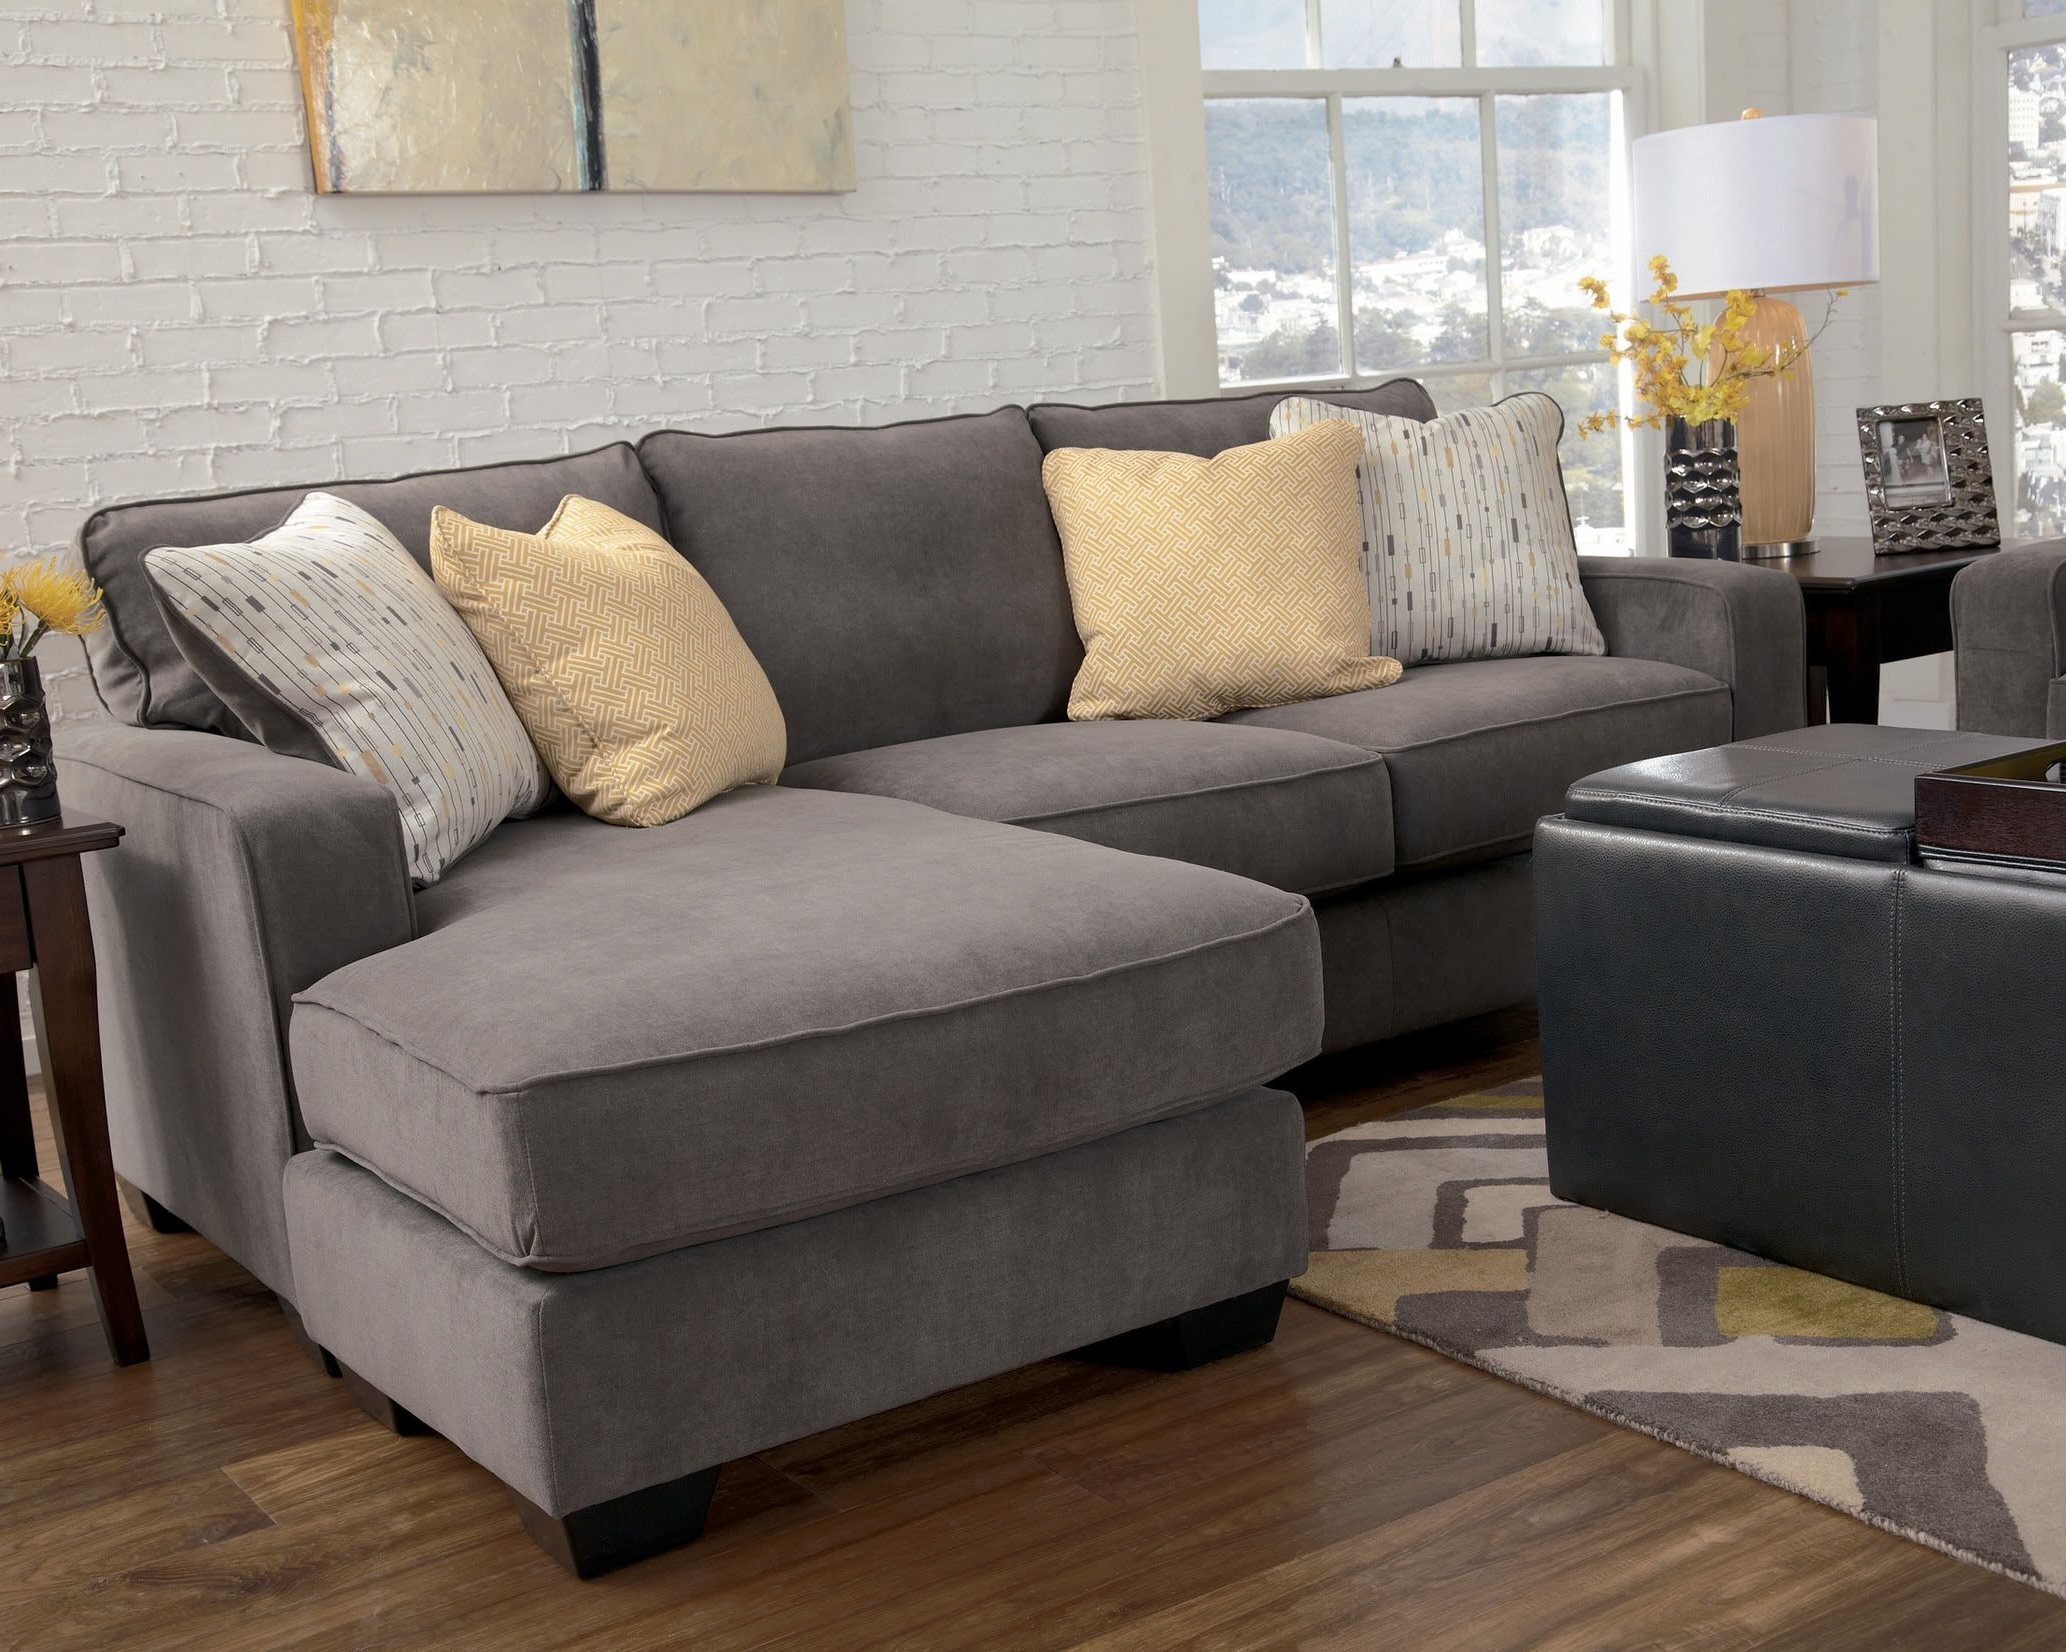 Best And Newest Grey Chaise Sofas Intended For Marble Contemporary Sofa Chaise Living Room Furniture Fabric (View 13 of 15)